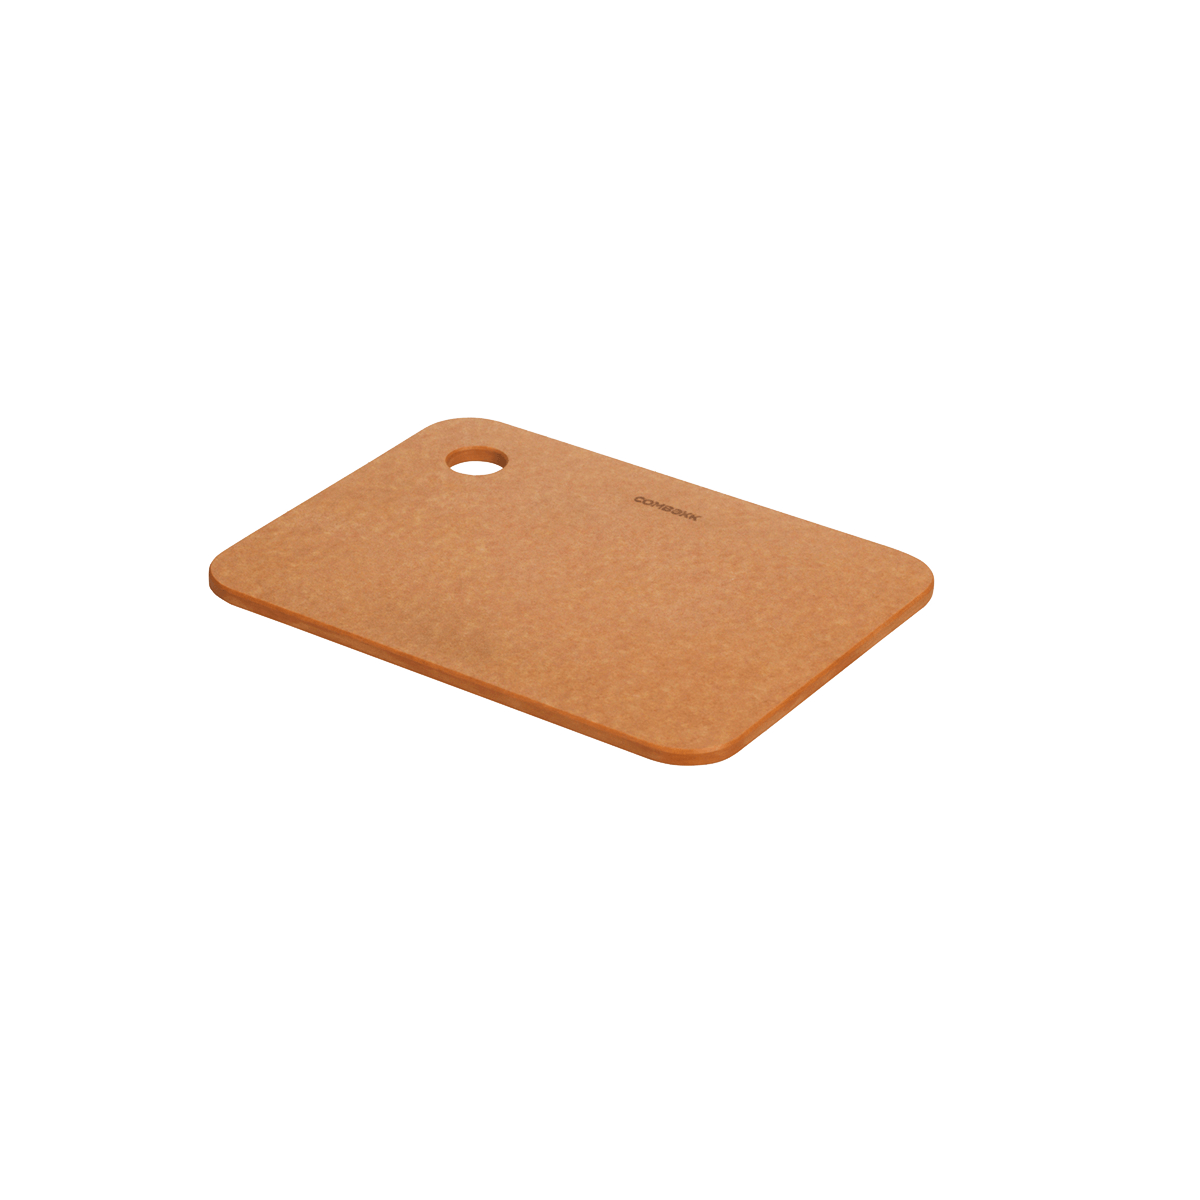 Recycled paper cutting board natural 15 x 20